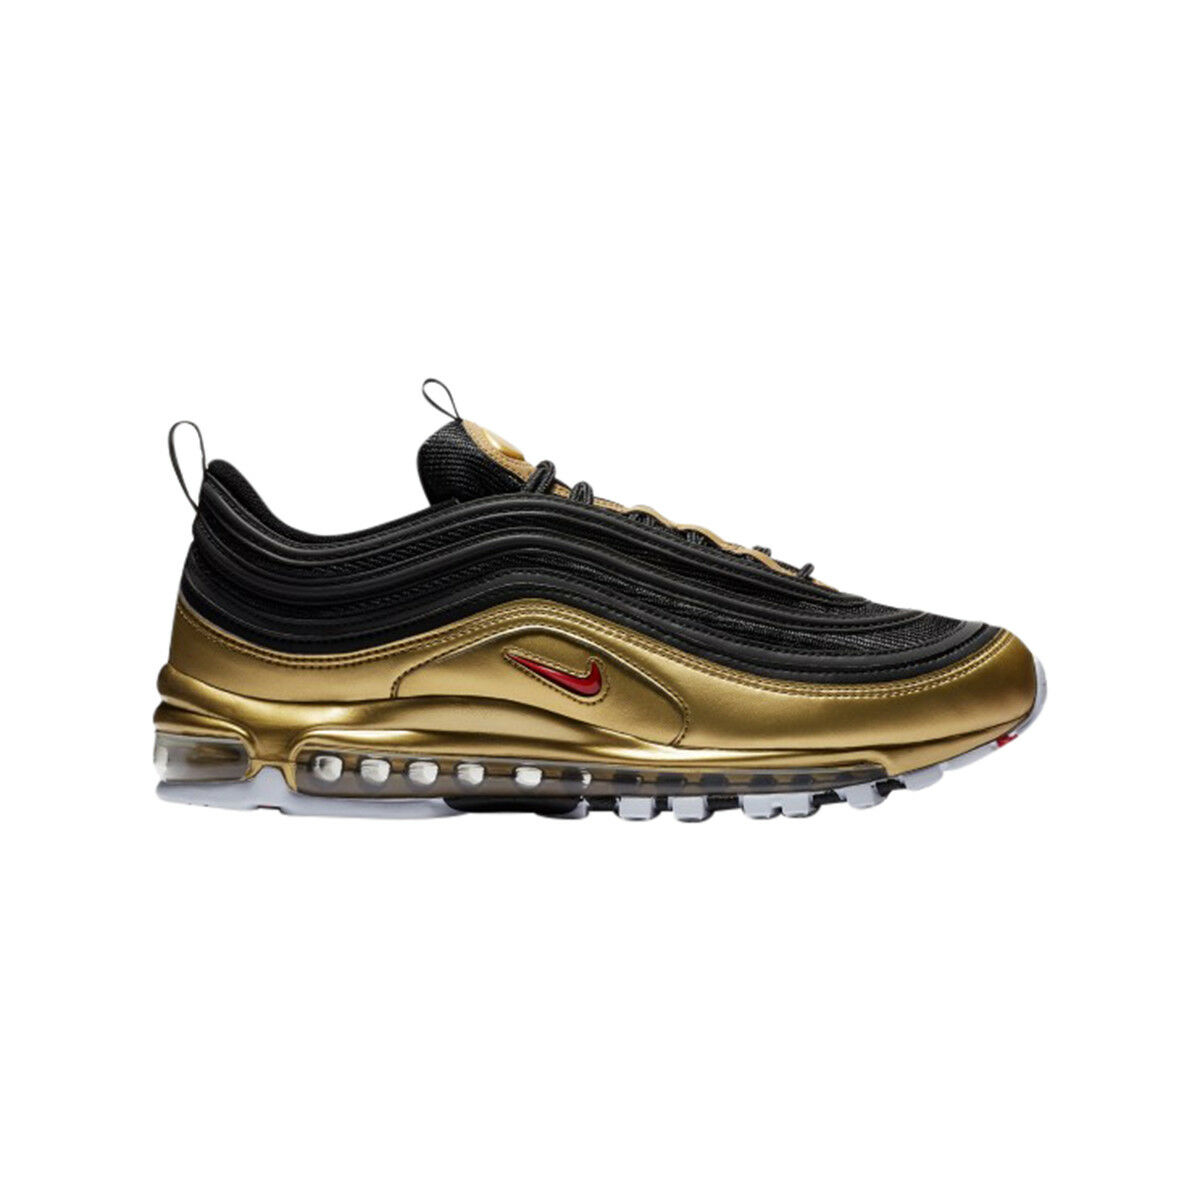 MEN'S NIKE AIR MAX 97 QS AT5458-002  METALLIC PACK  Black Red gold White SZ 5-13